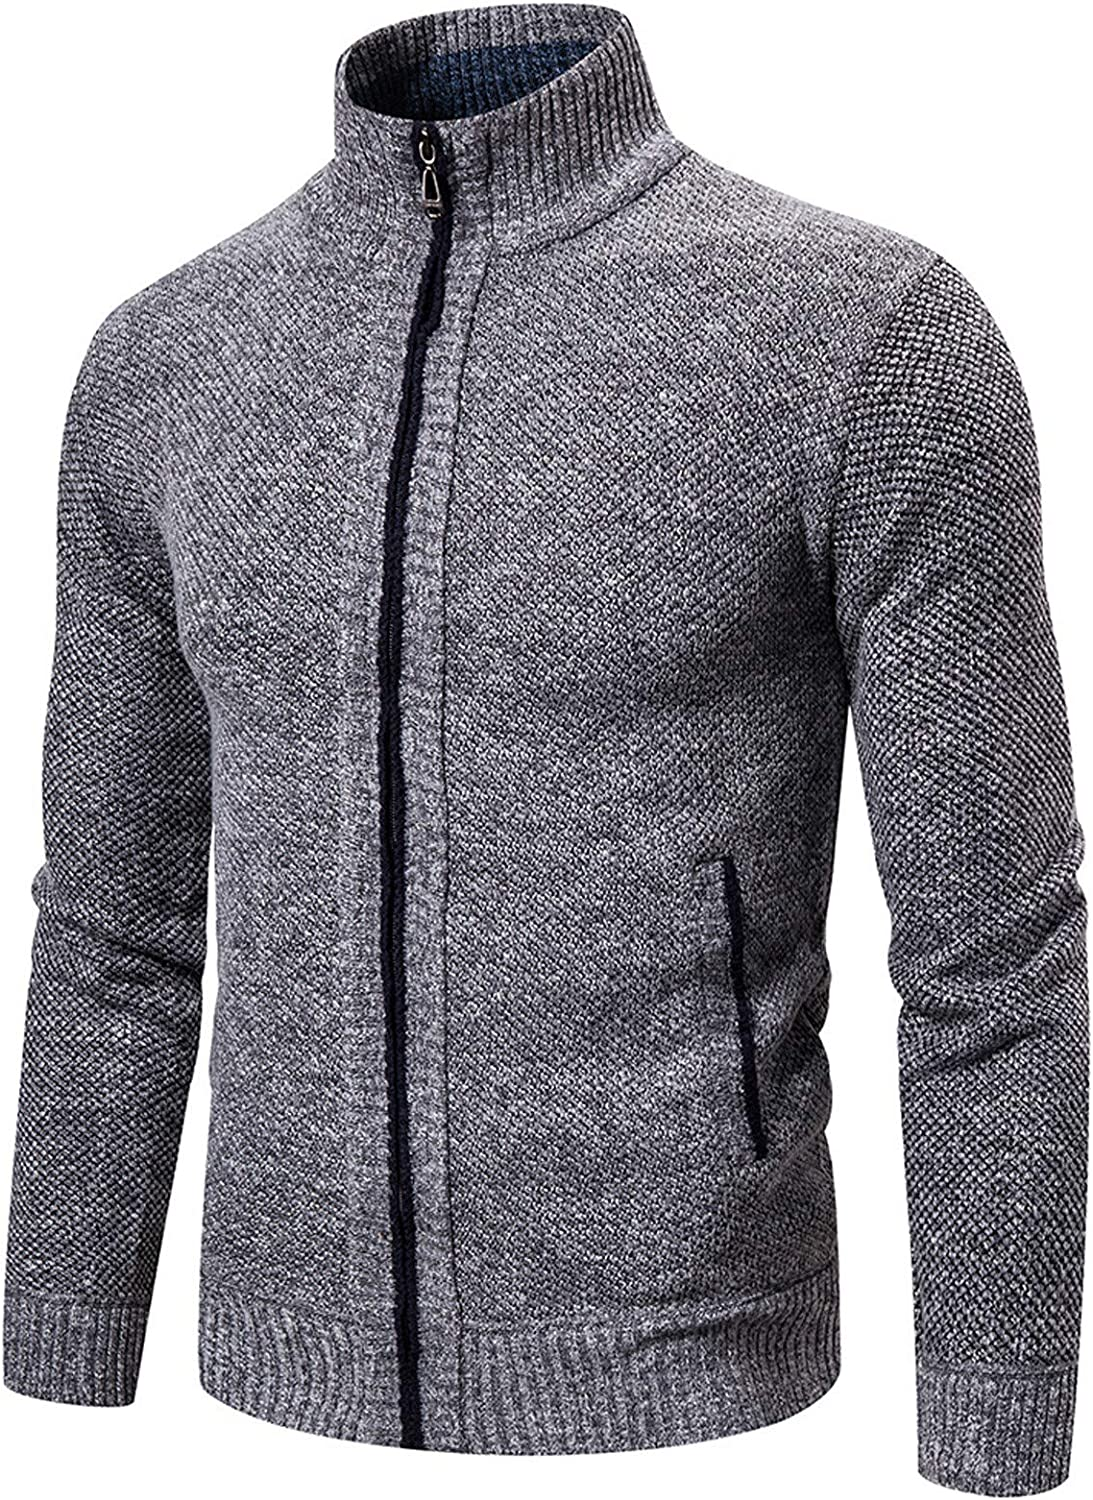 Mens Cardigan Sweater Long Sleeve Stand Collar Cardigans Jacket Full Zip Cable Knitted Cardigan Sweater Coat